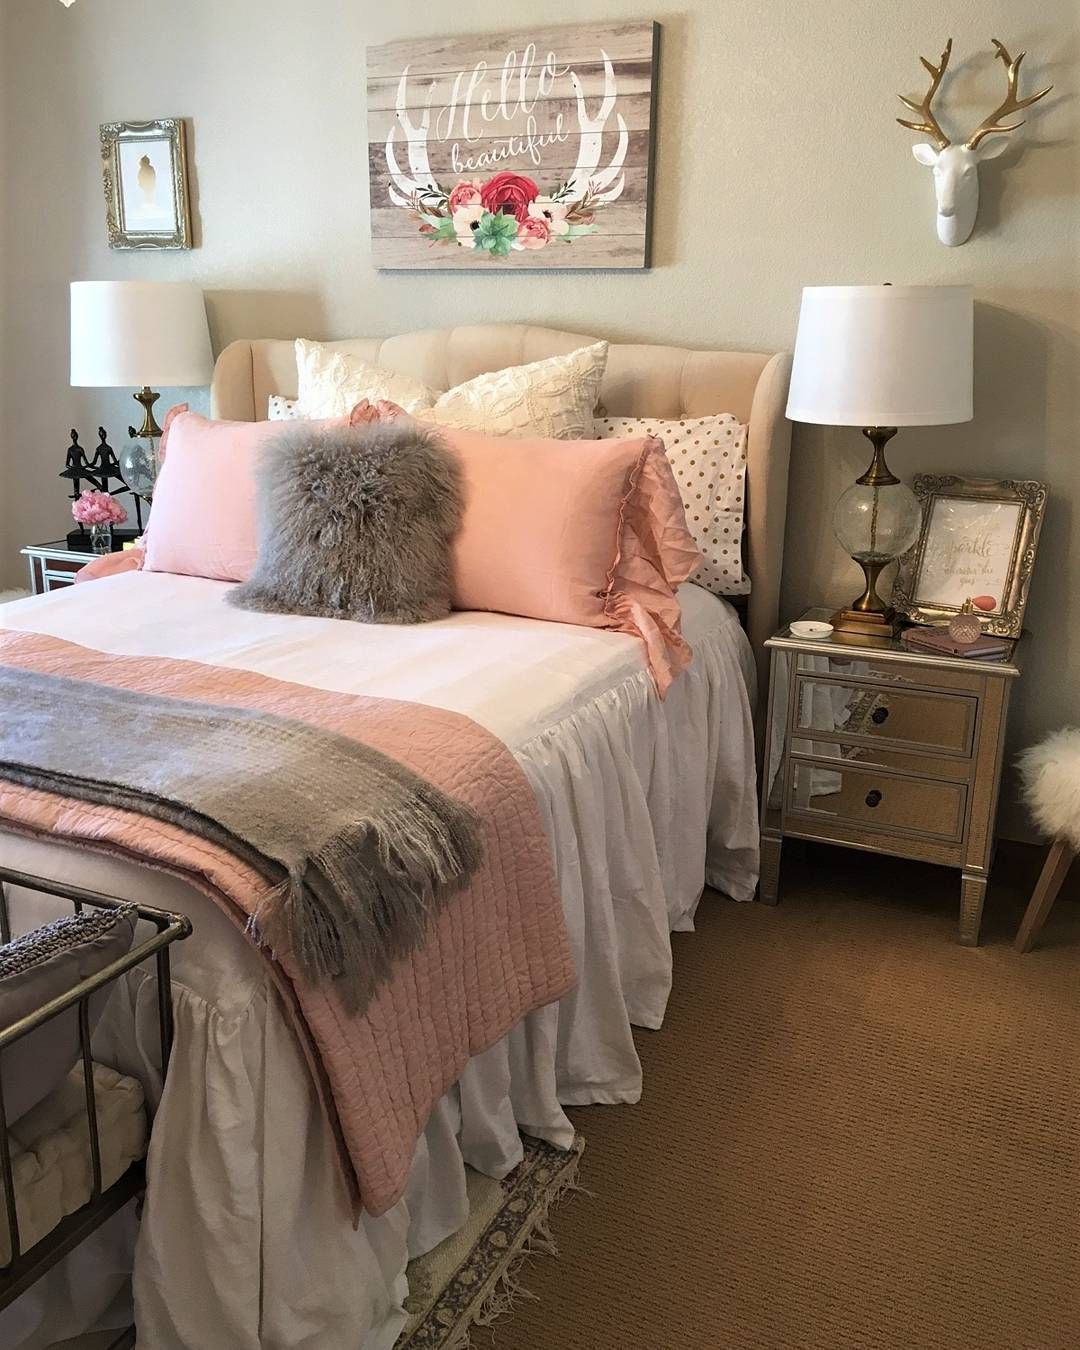 Wall decor for teen bedroom weure feeling pretty in pink with this stunning bedroom design